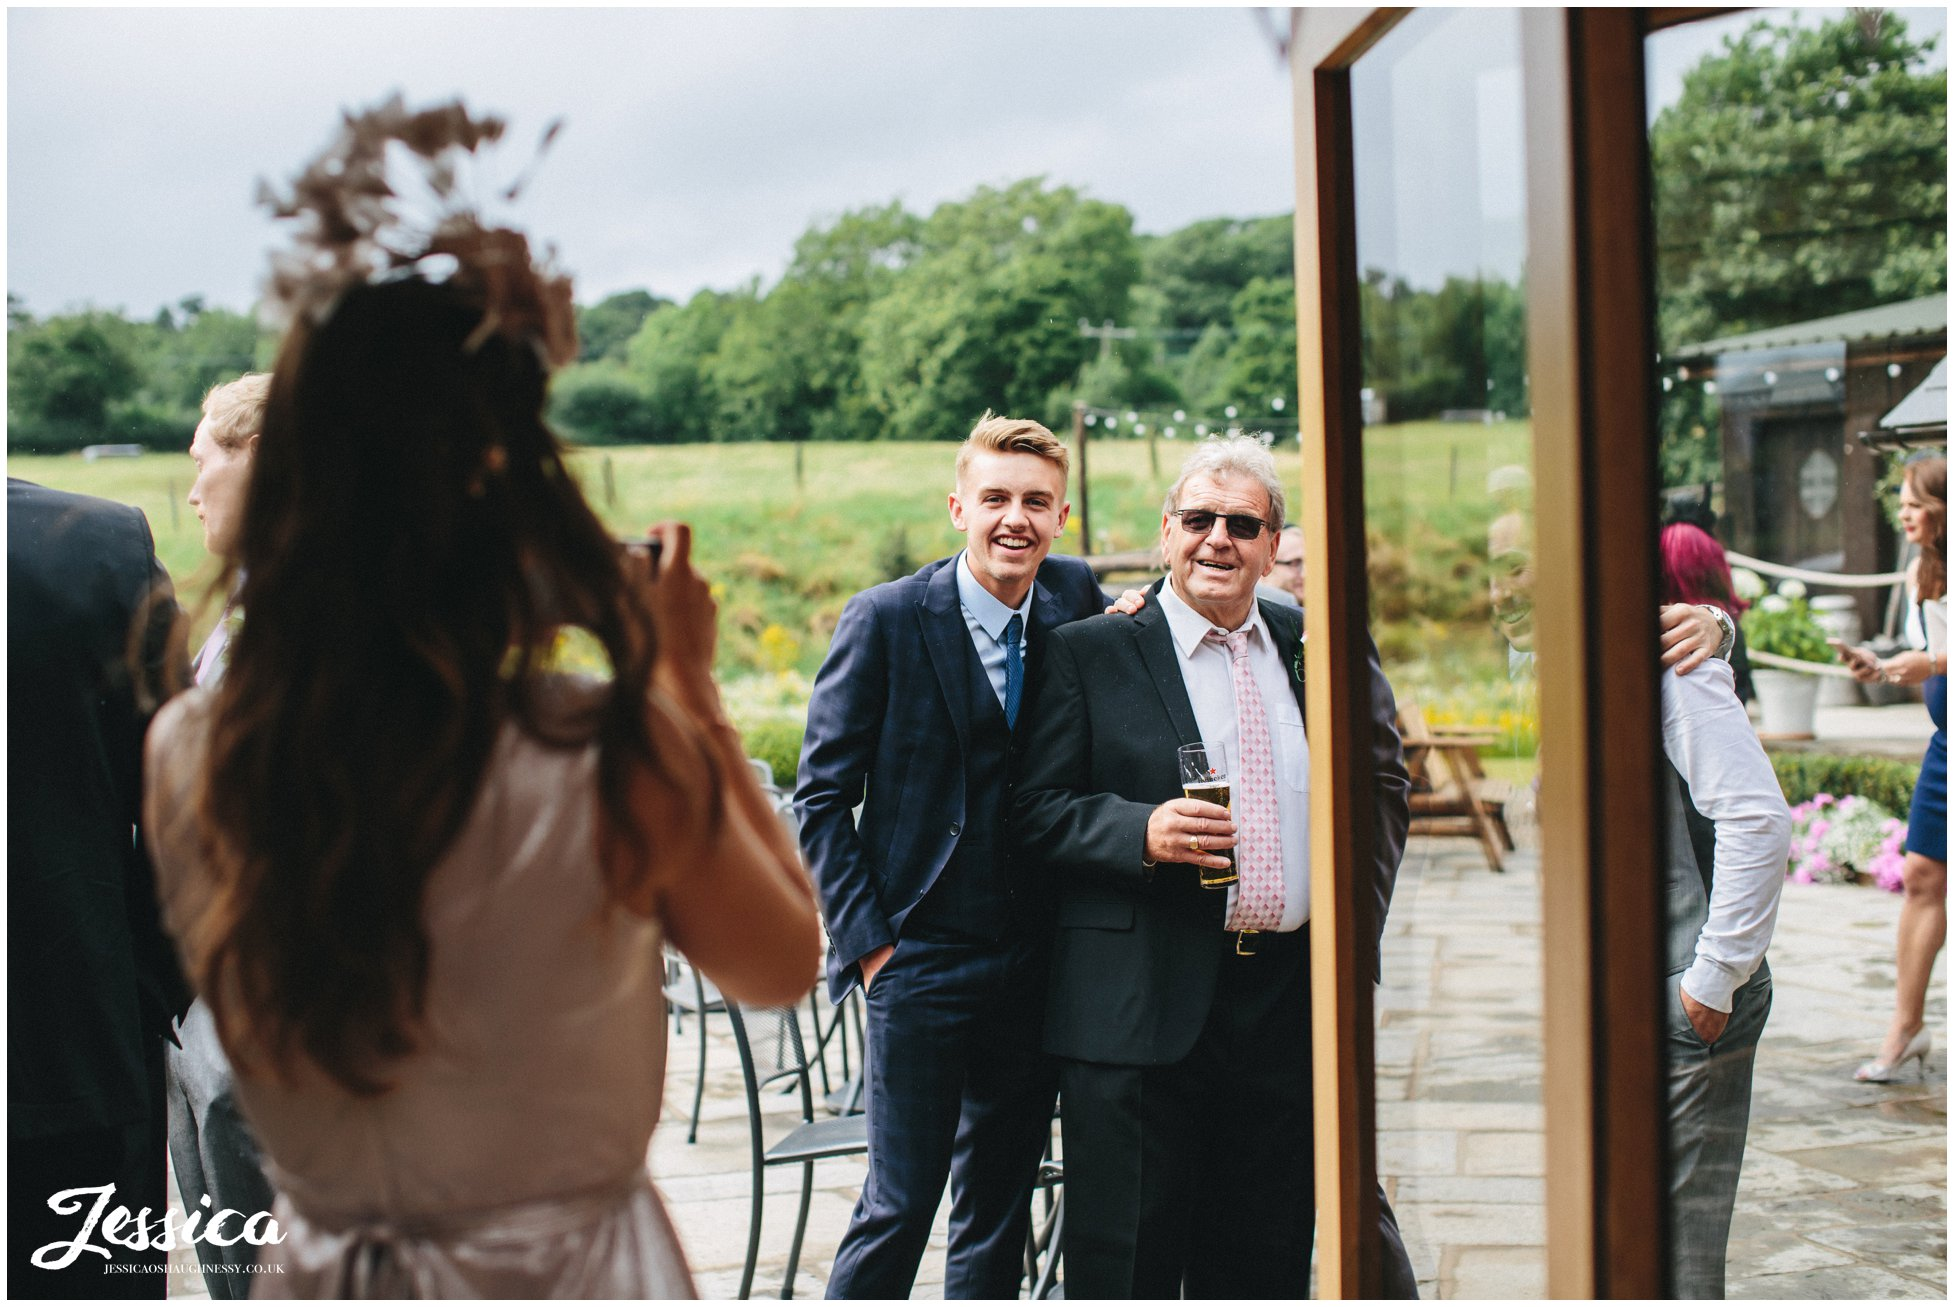 guests pose for photograph stood outside at a north wales wedding